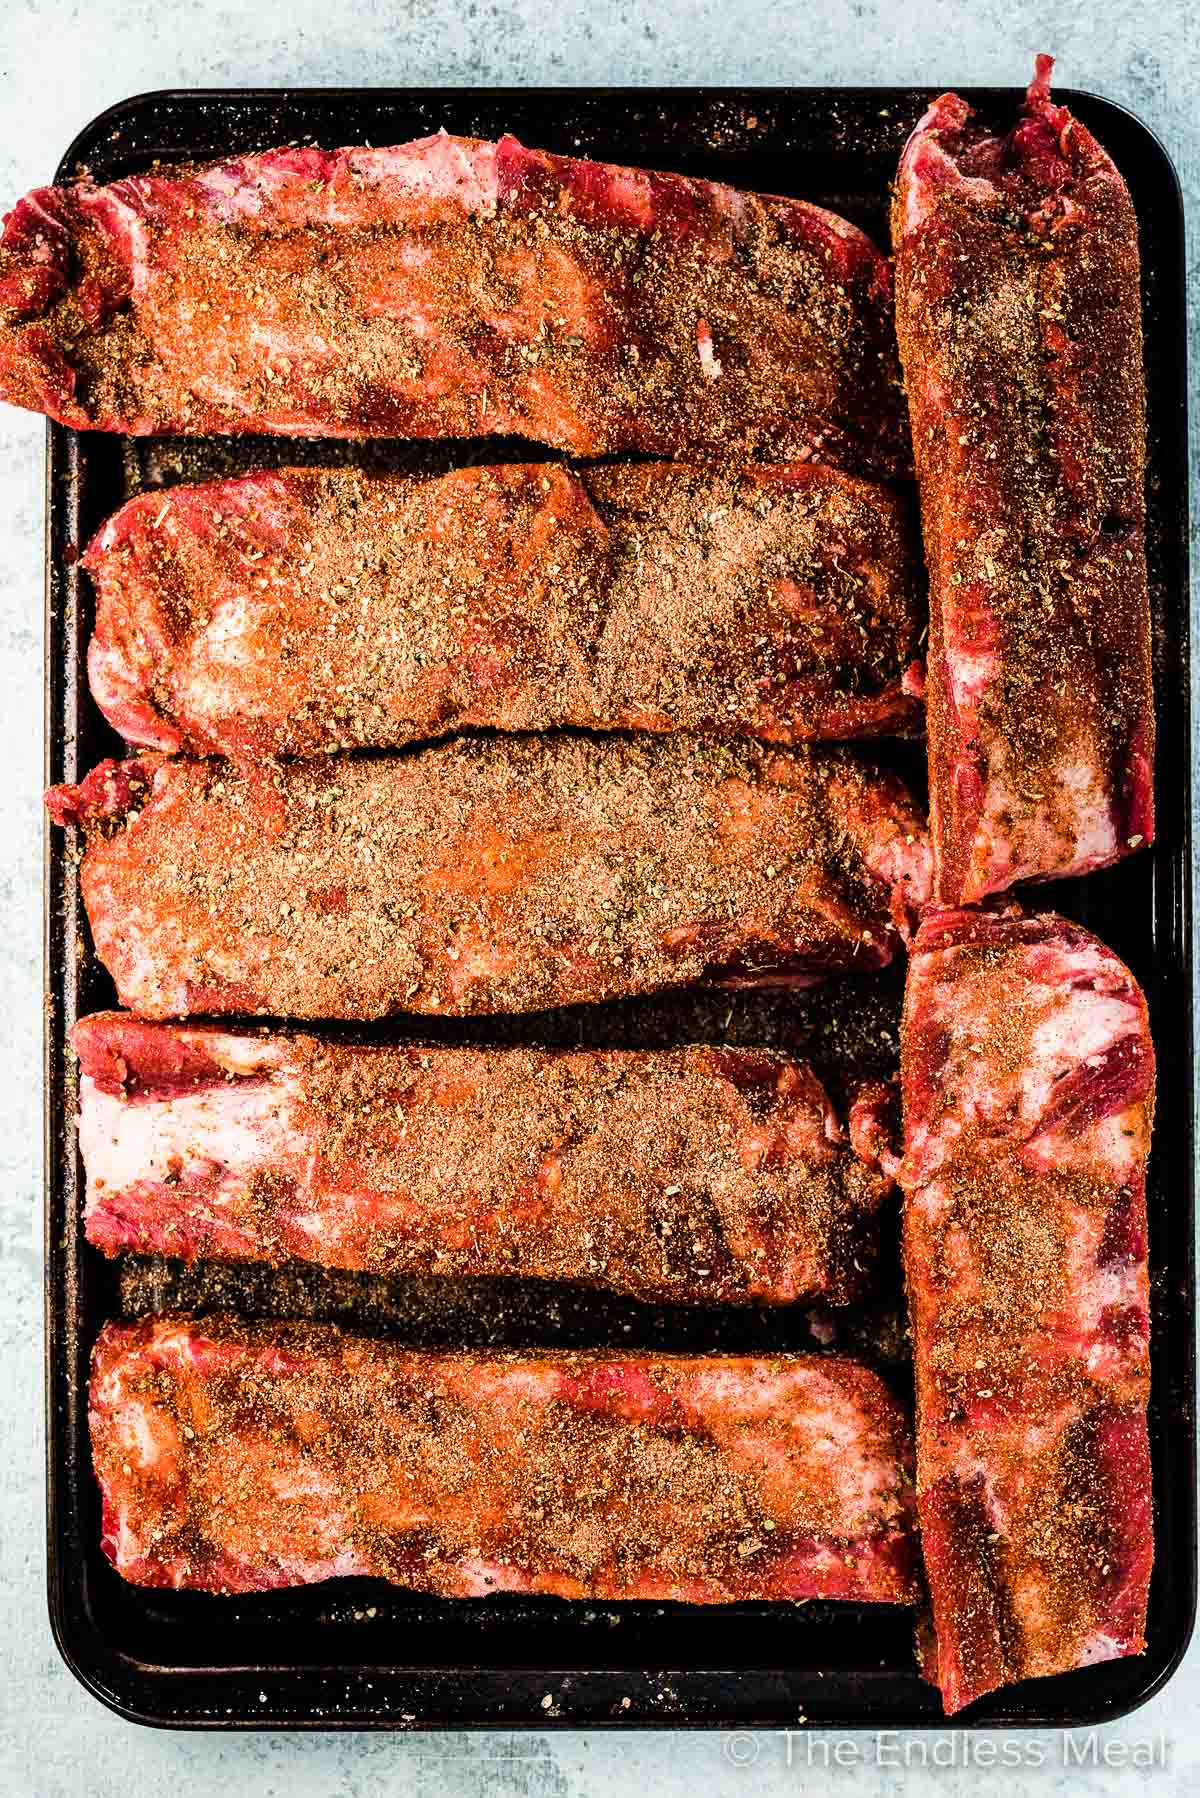 Uncooked beef back ribs with spices on them on a baking tray.